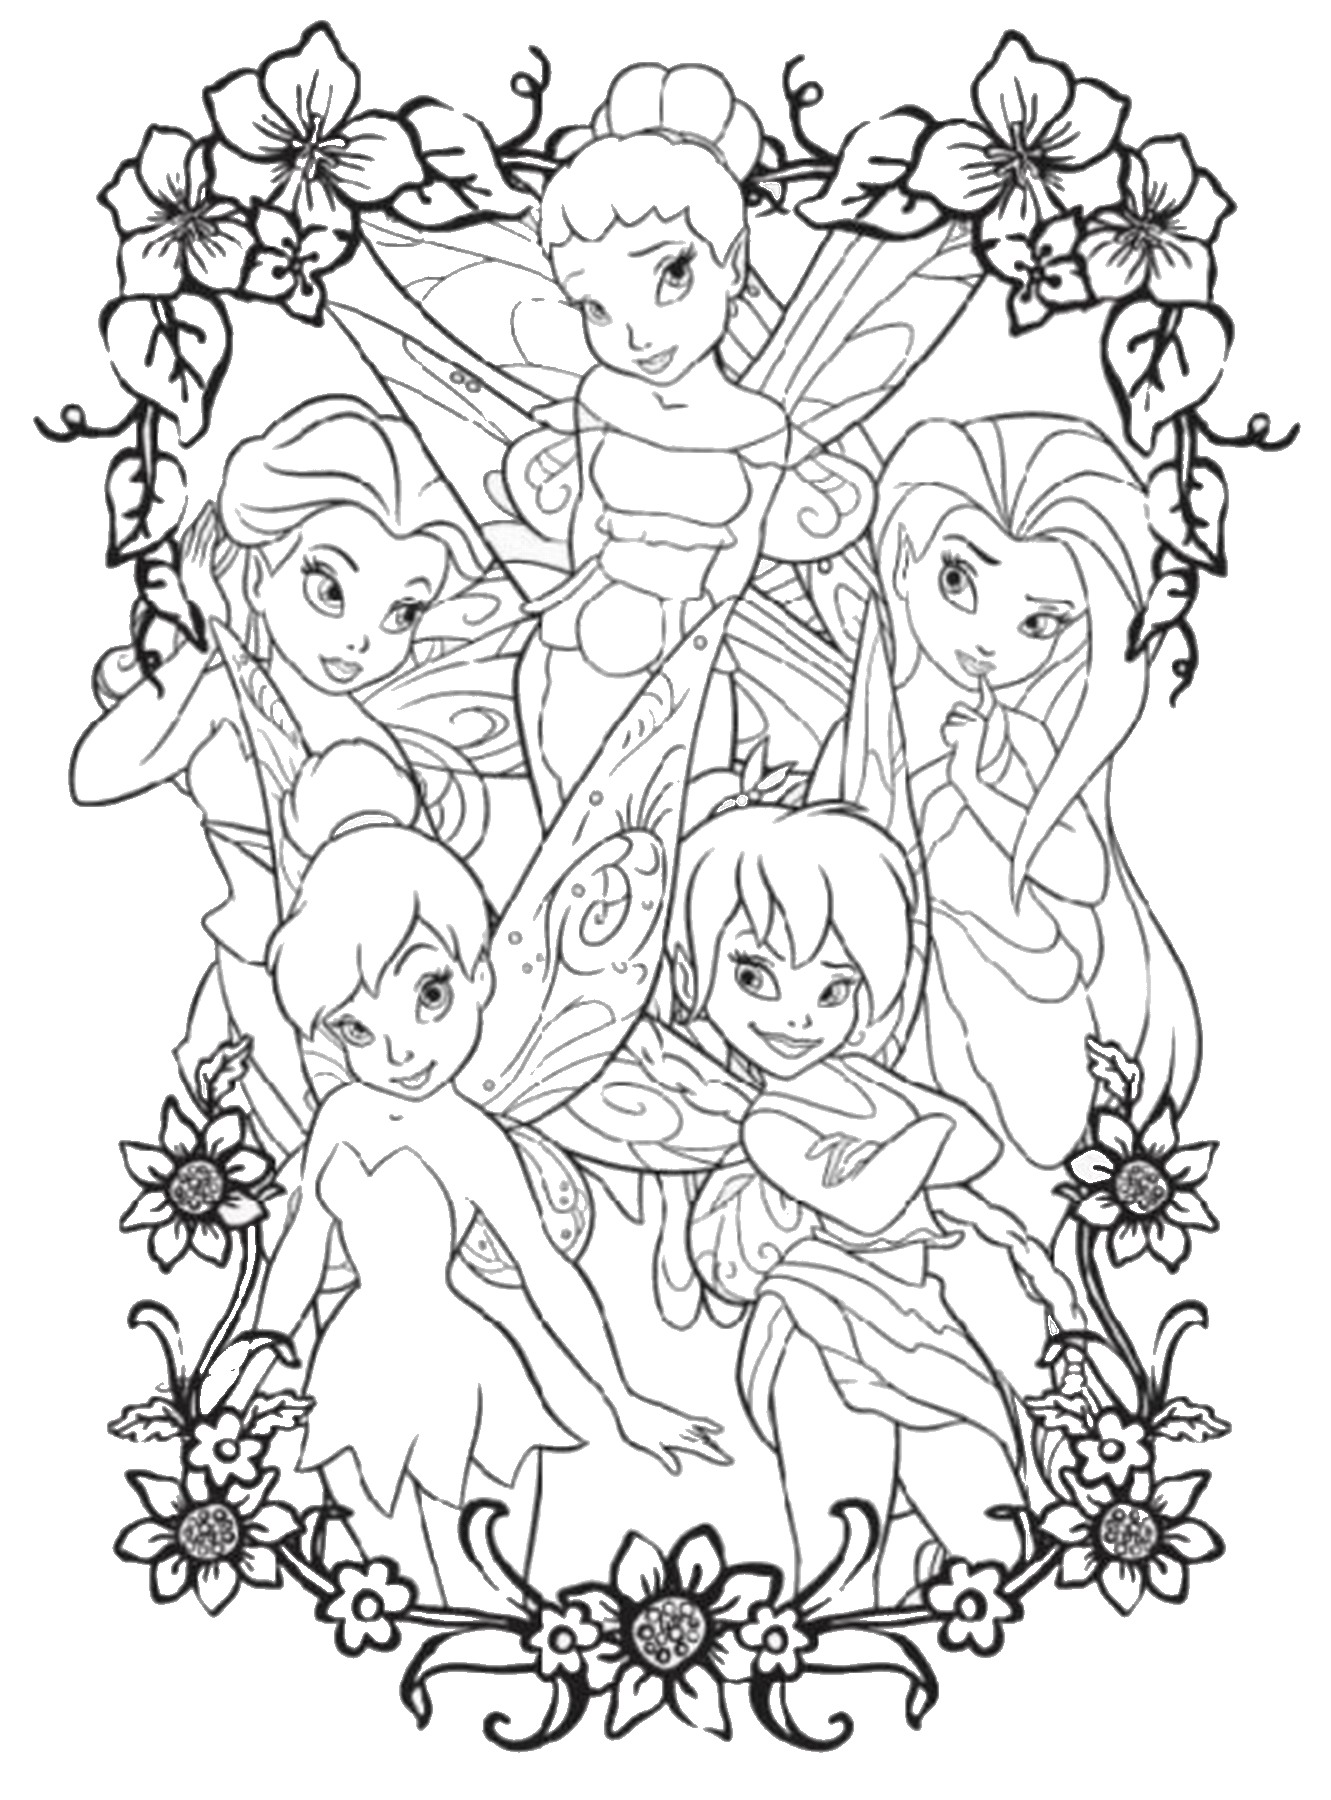 tinker bell coloring pages tinkerbell coloring pages minister coloring tinker bell pages coloring